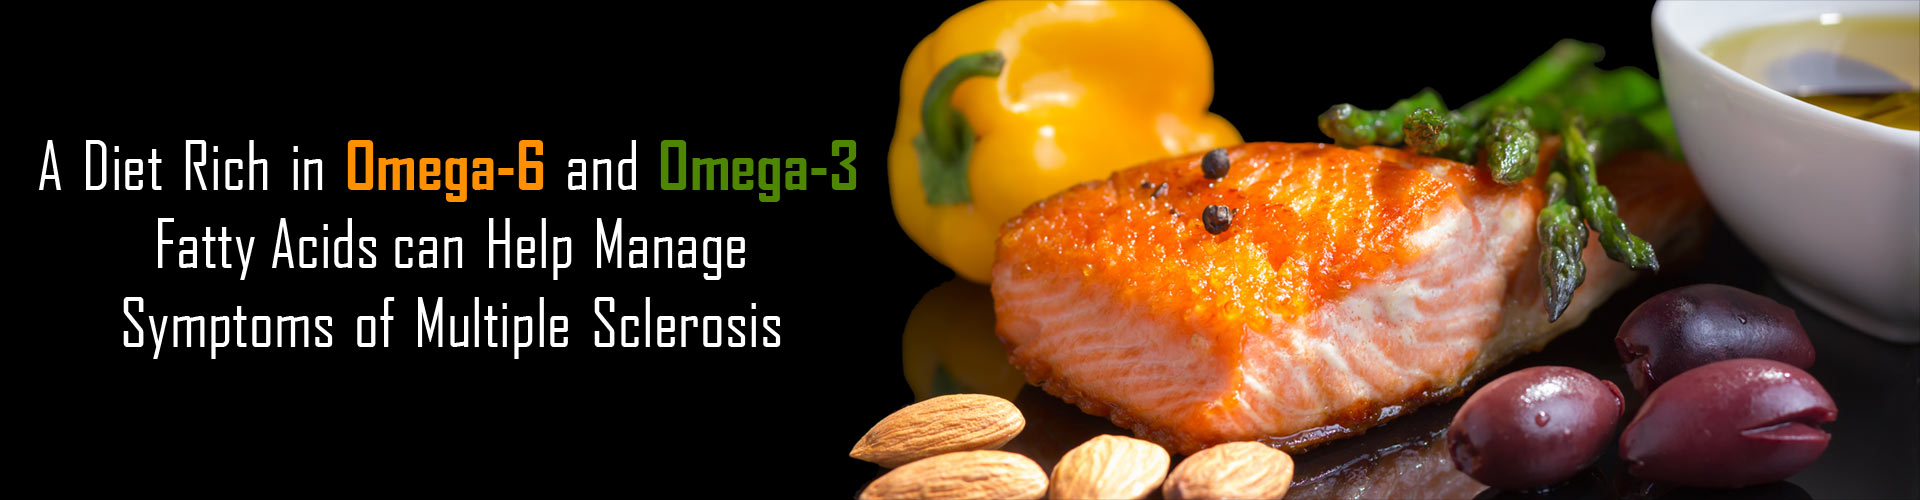 A Diet Rich in Omega-6 and Omega-3 Fatty Acids can Help Manage Symptoms of Multiple Sclerosis.